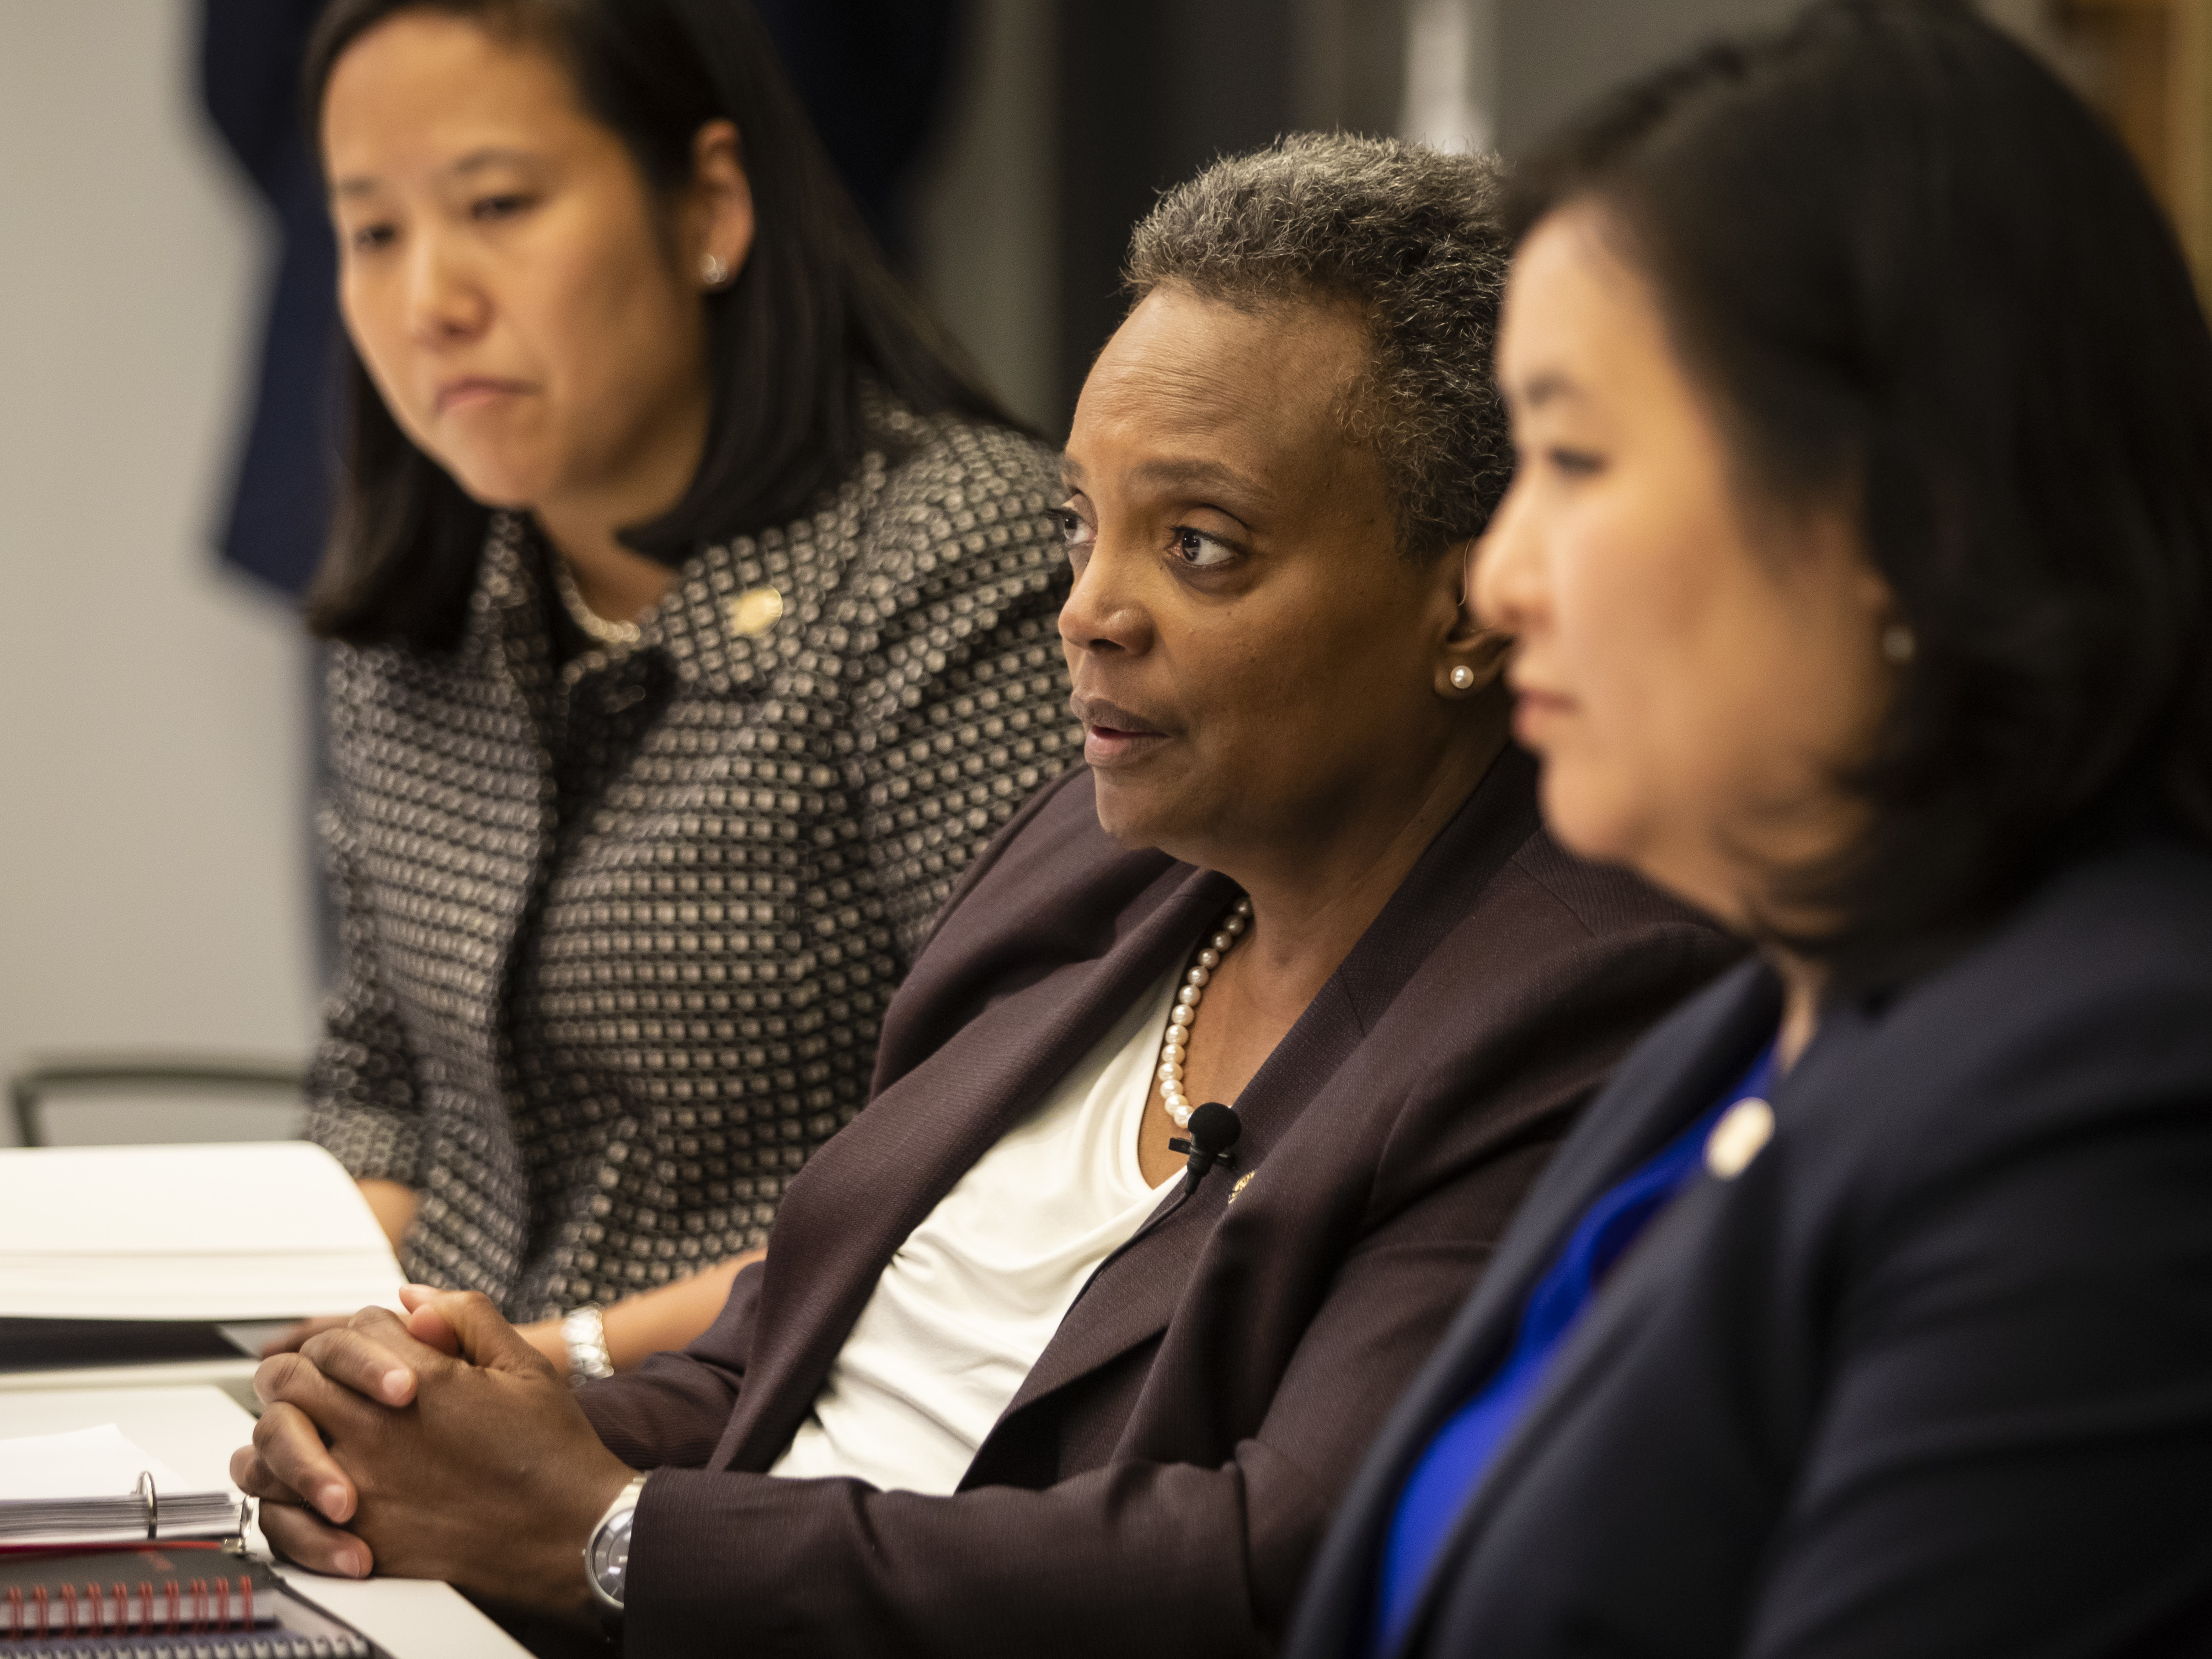 (From left) Chief Financial Officer Jennie Huang Bennett, Mayor Lori Lightfoot and Budget Director Susie Park sit down for an interview with the Chicago Sun-Times Editorial Board, hours after Lightfoot delivered her first budget address to the Chicago City Council at City Hall, Wednesday afternoon, Oct. 23, 2019.